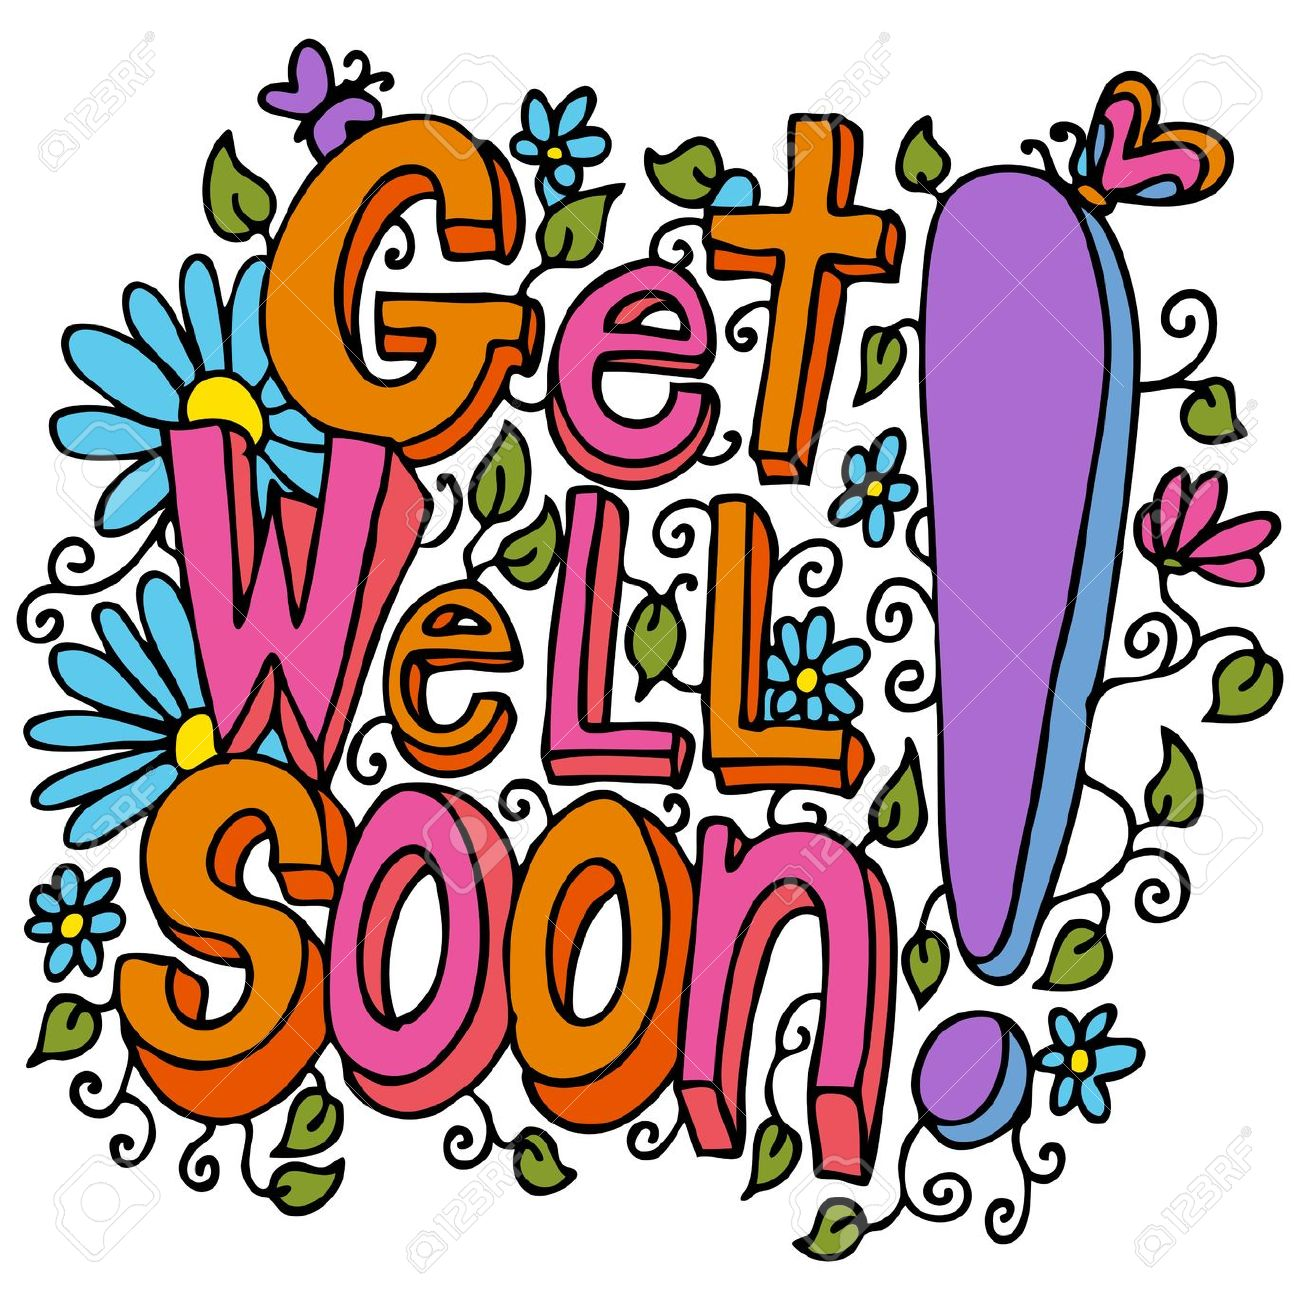 Free Get Well Soon Images   Free download best Free Get ...